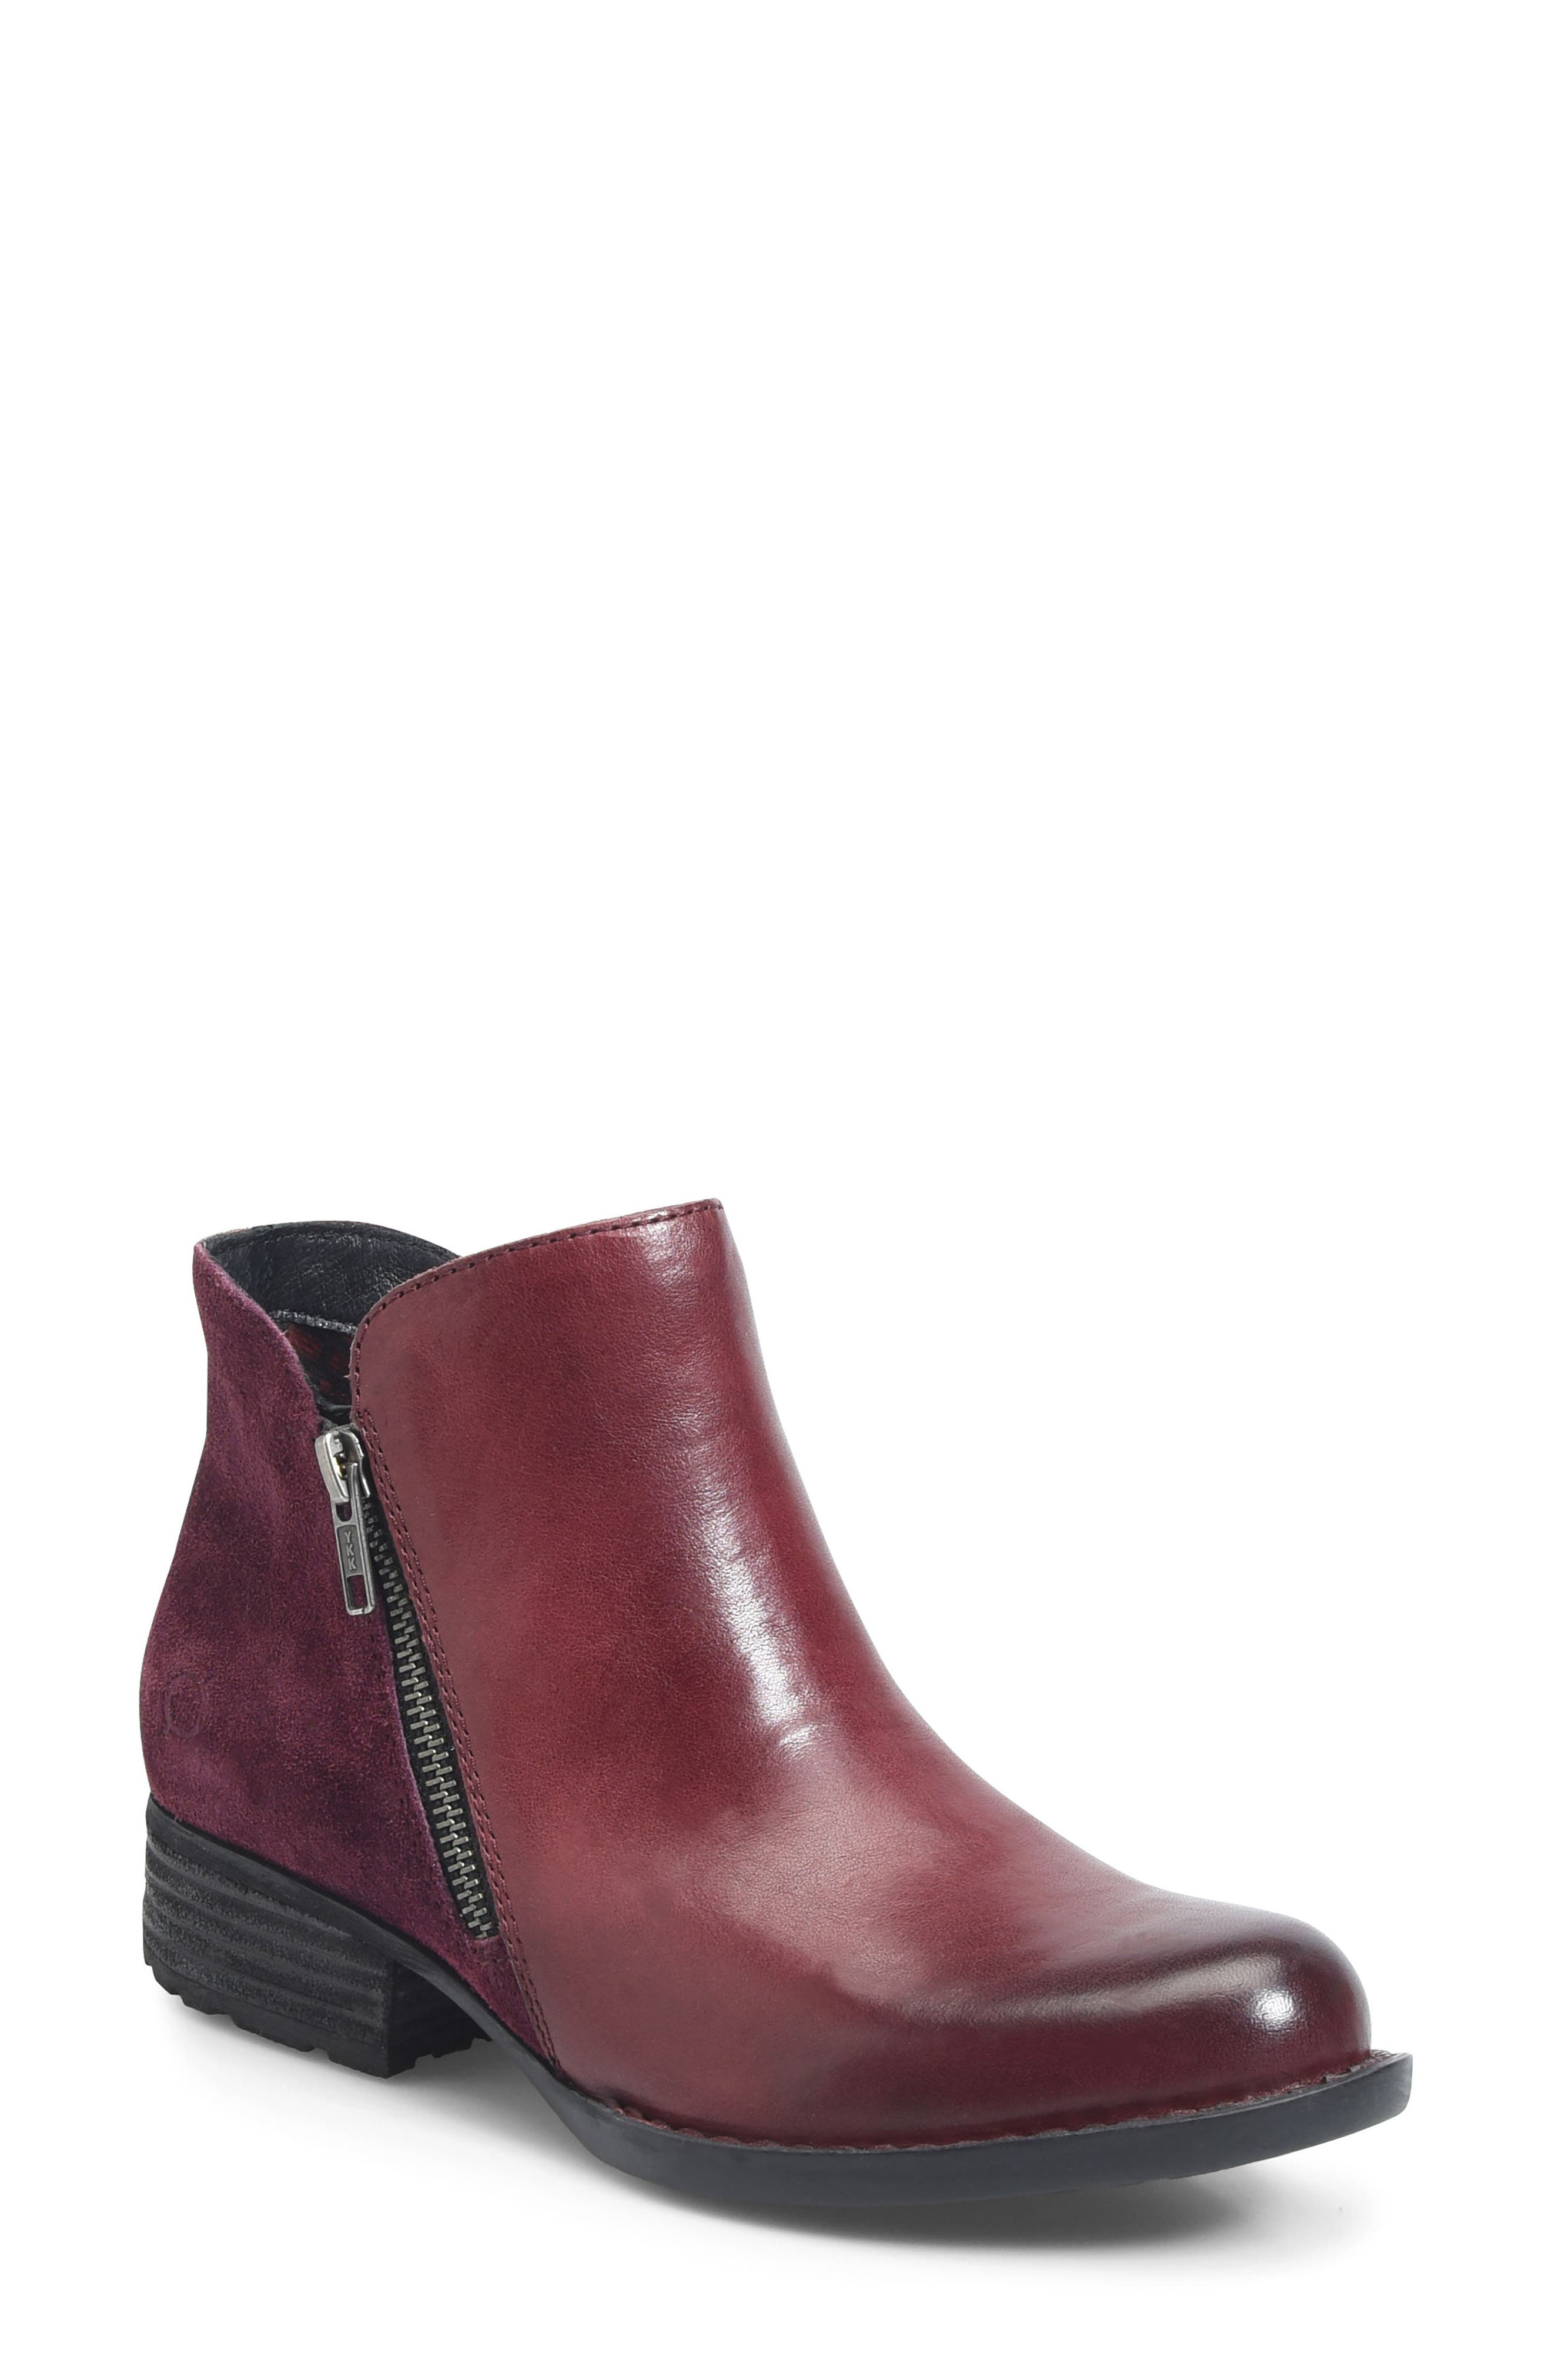 Keefe Bootie,                         Main,                         color, Burgundy/ Purple Combo